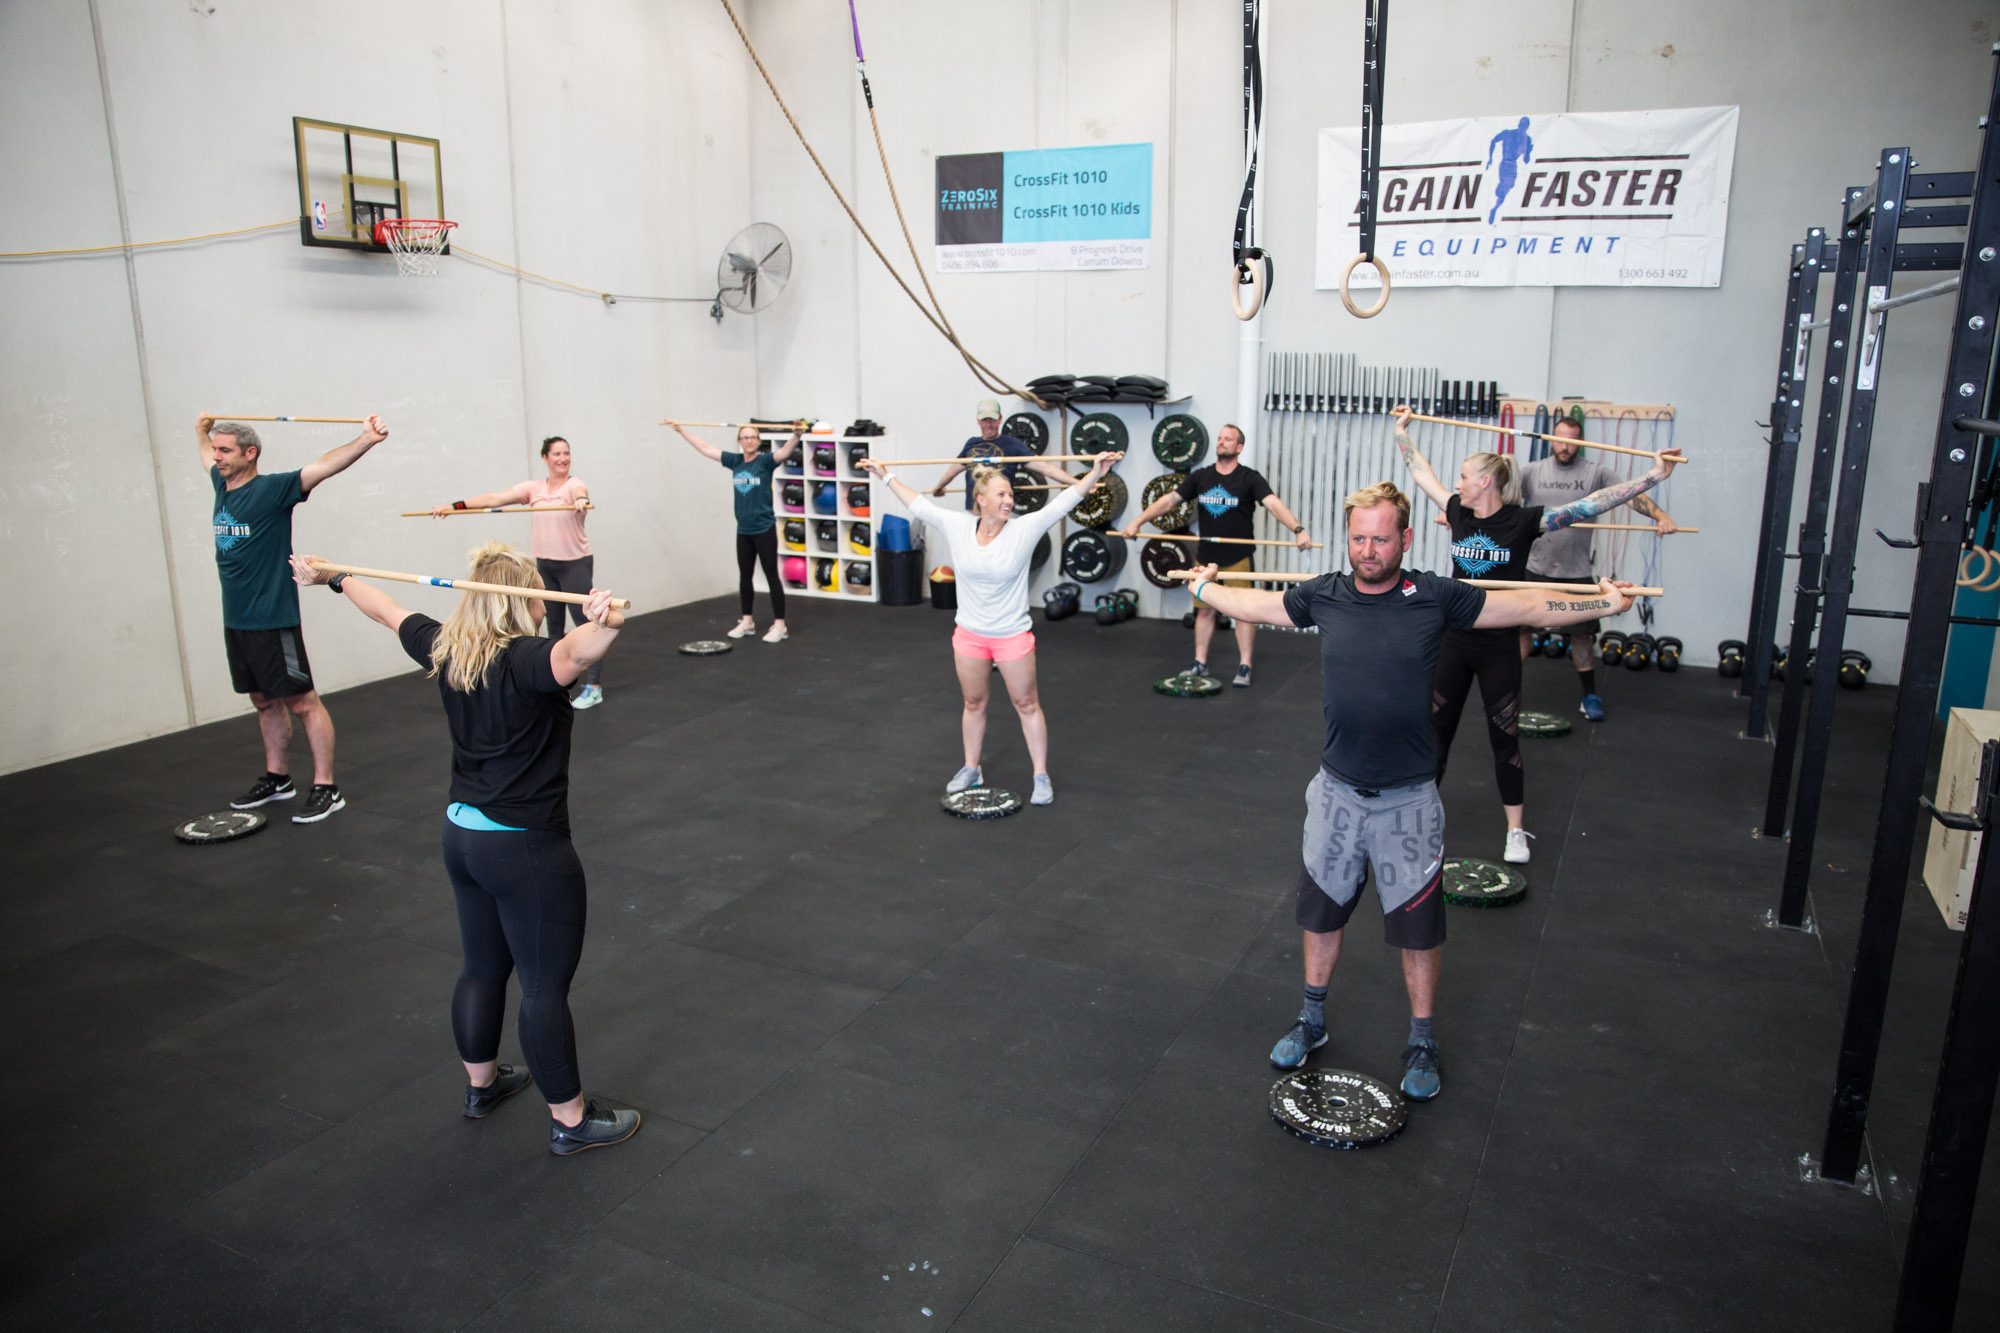 candice-thomason-crossfit-1010- feb-2019-37.jpg